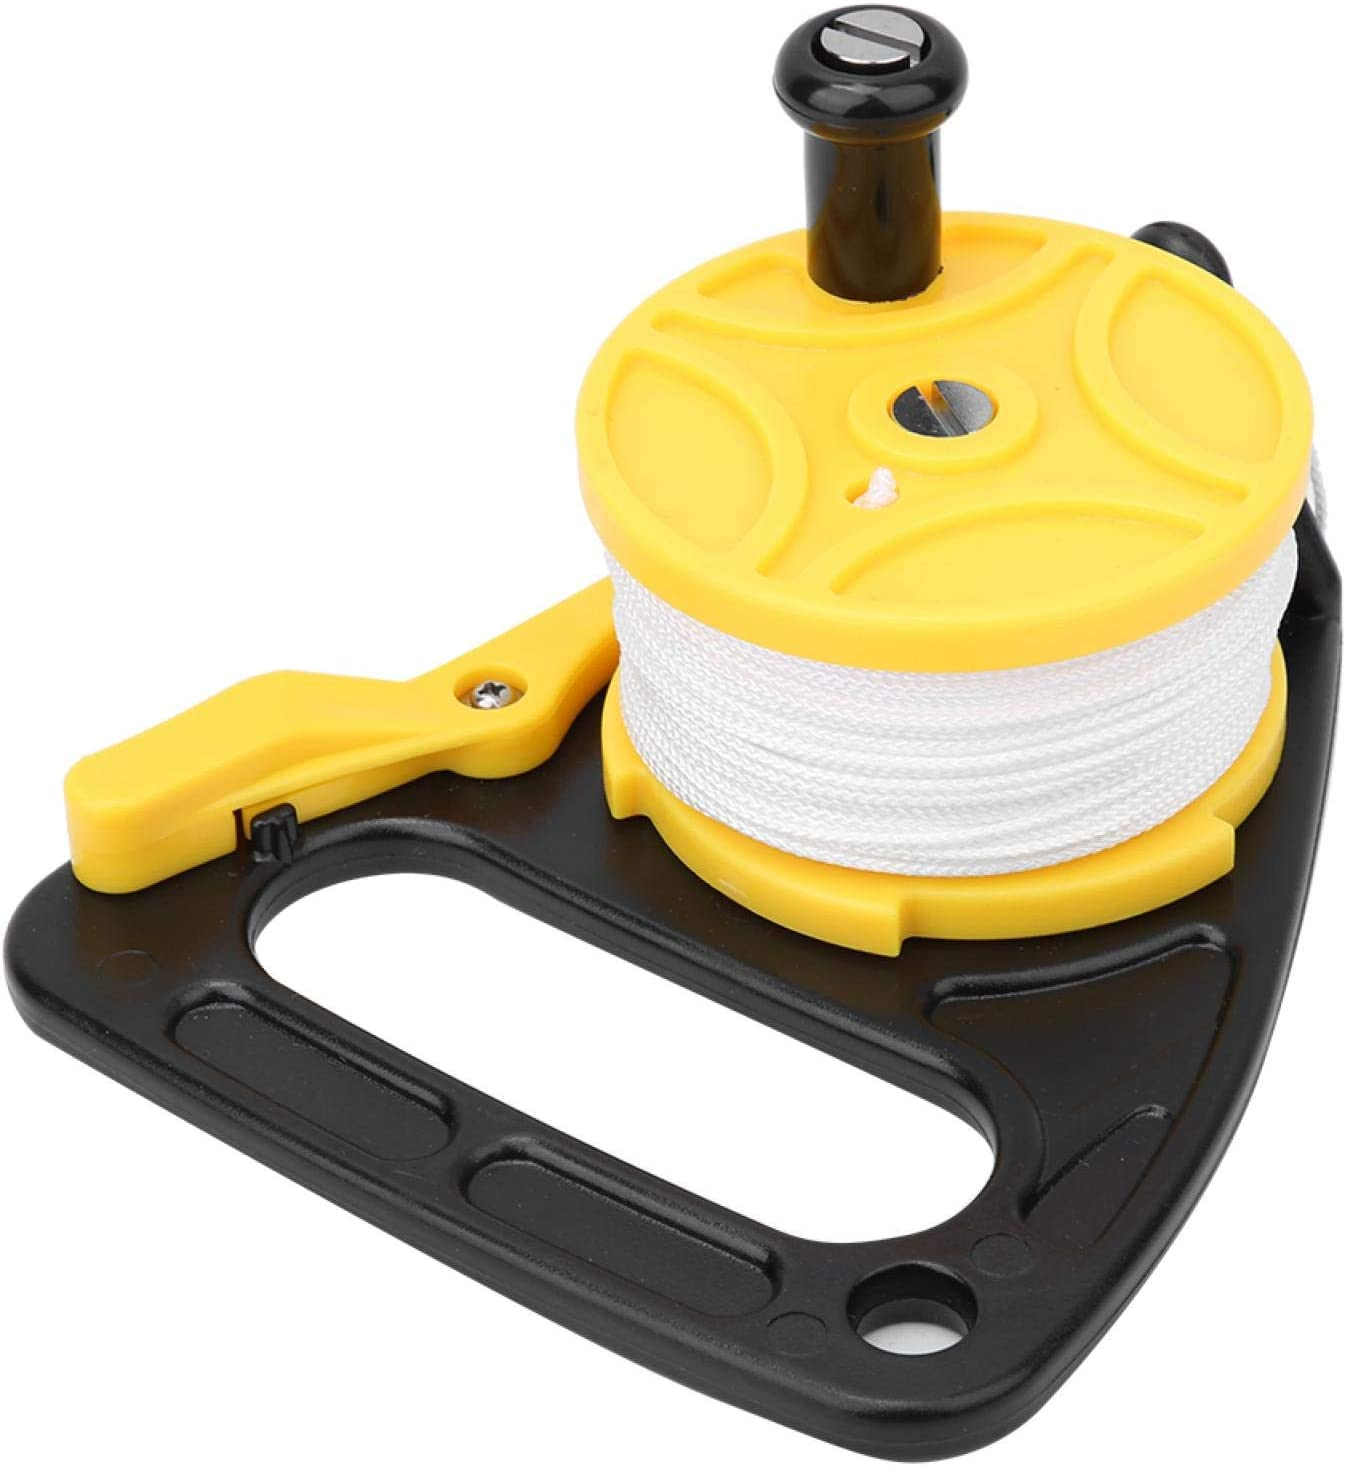 Thumb Stopper Diving Spool Underwate Controller Reel Gifts New mail order 46m